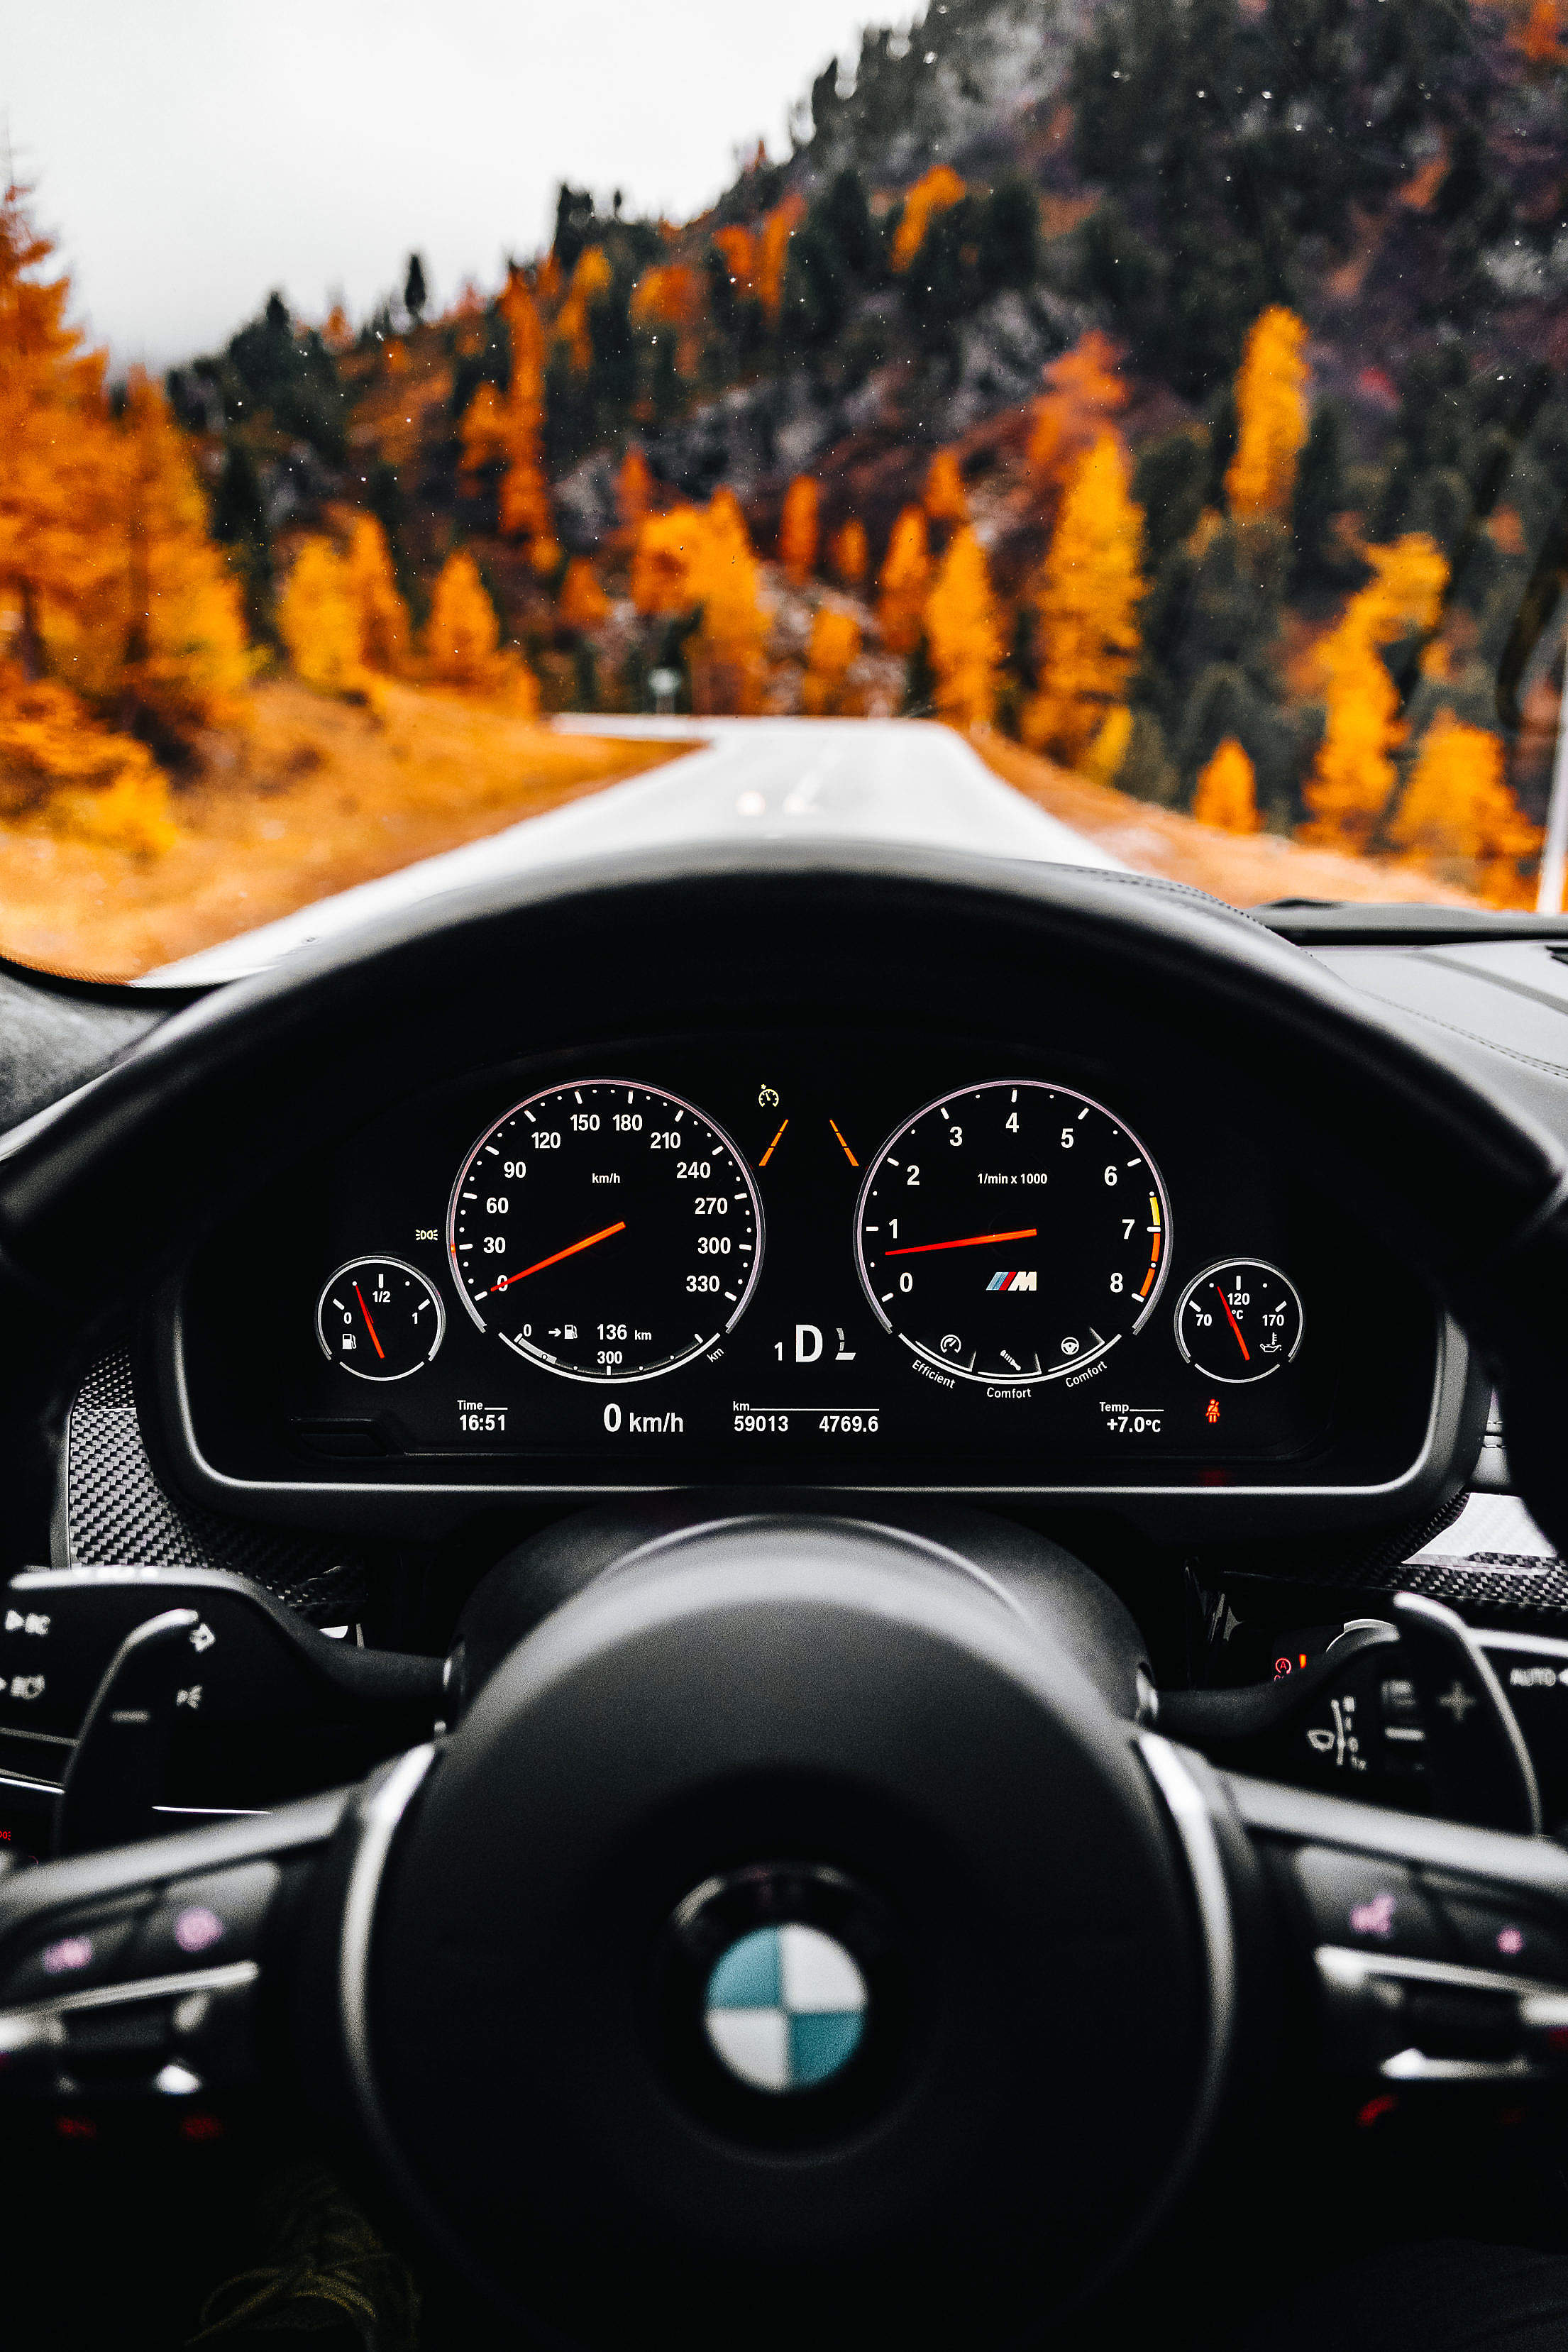 A View from The Driver's Angle to an Autumn Road Free Stock Photo